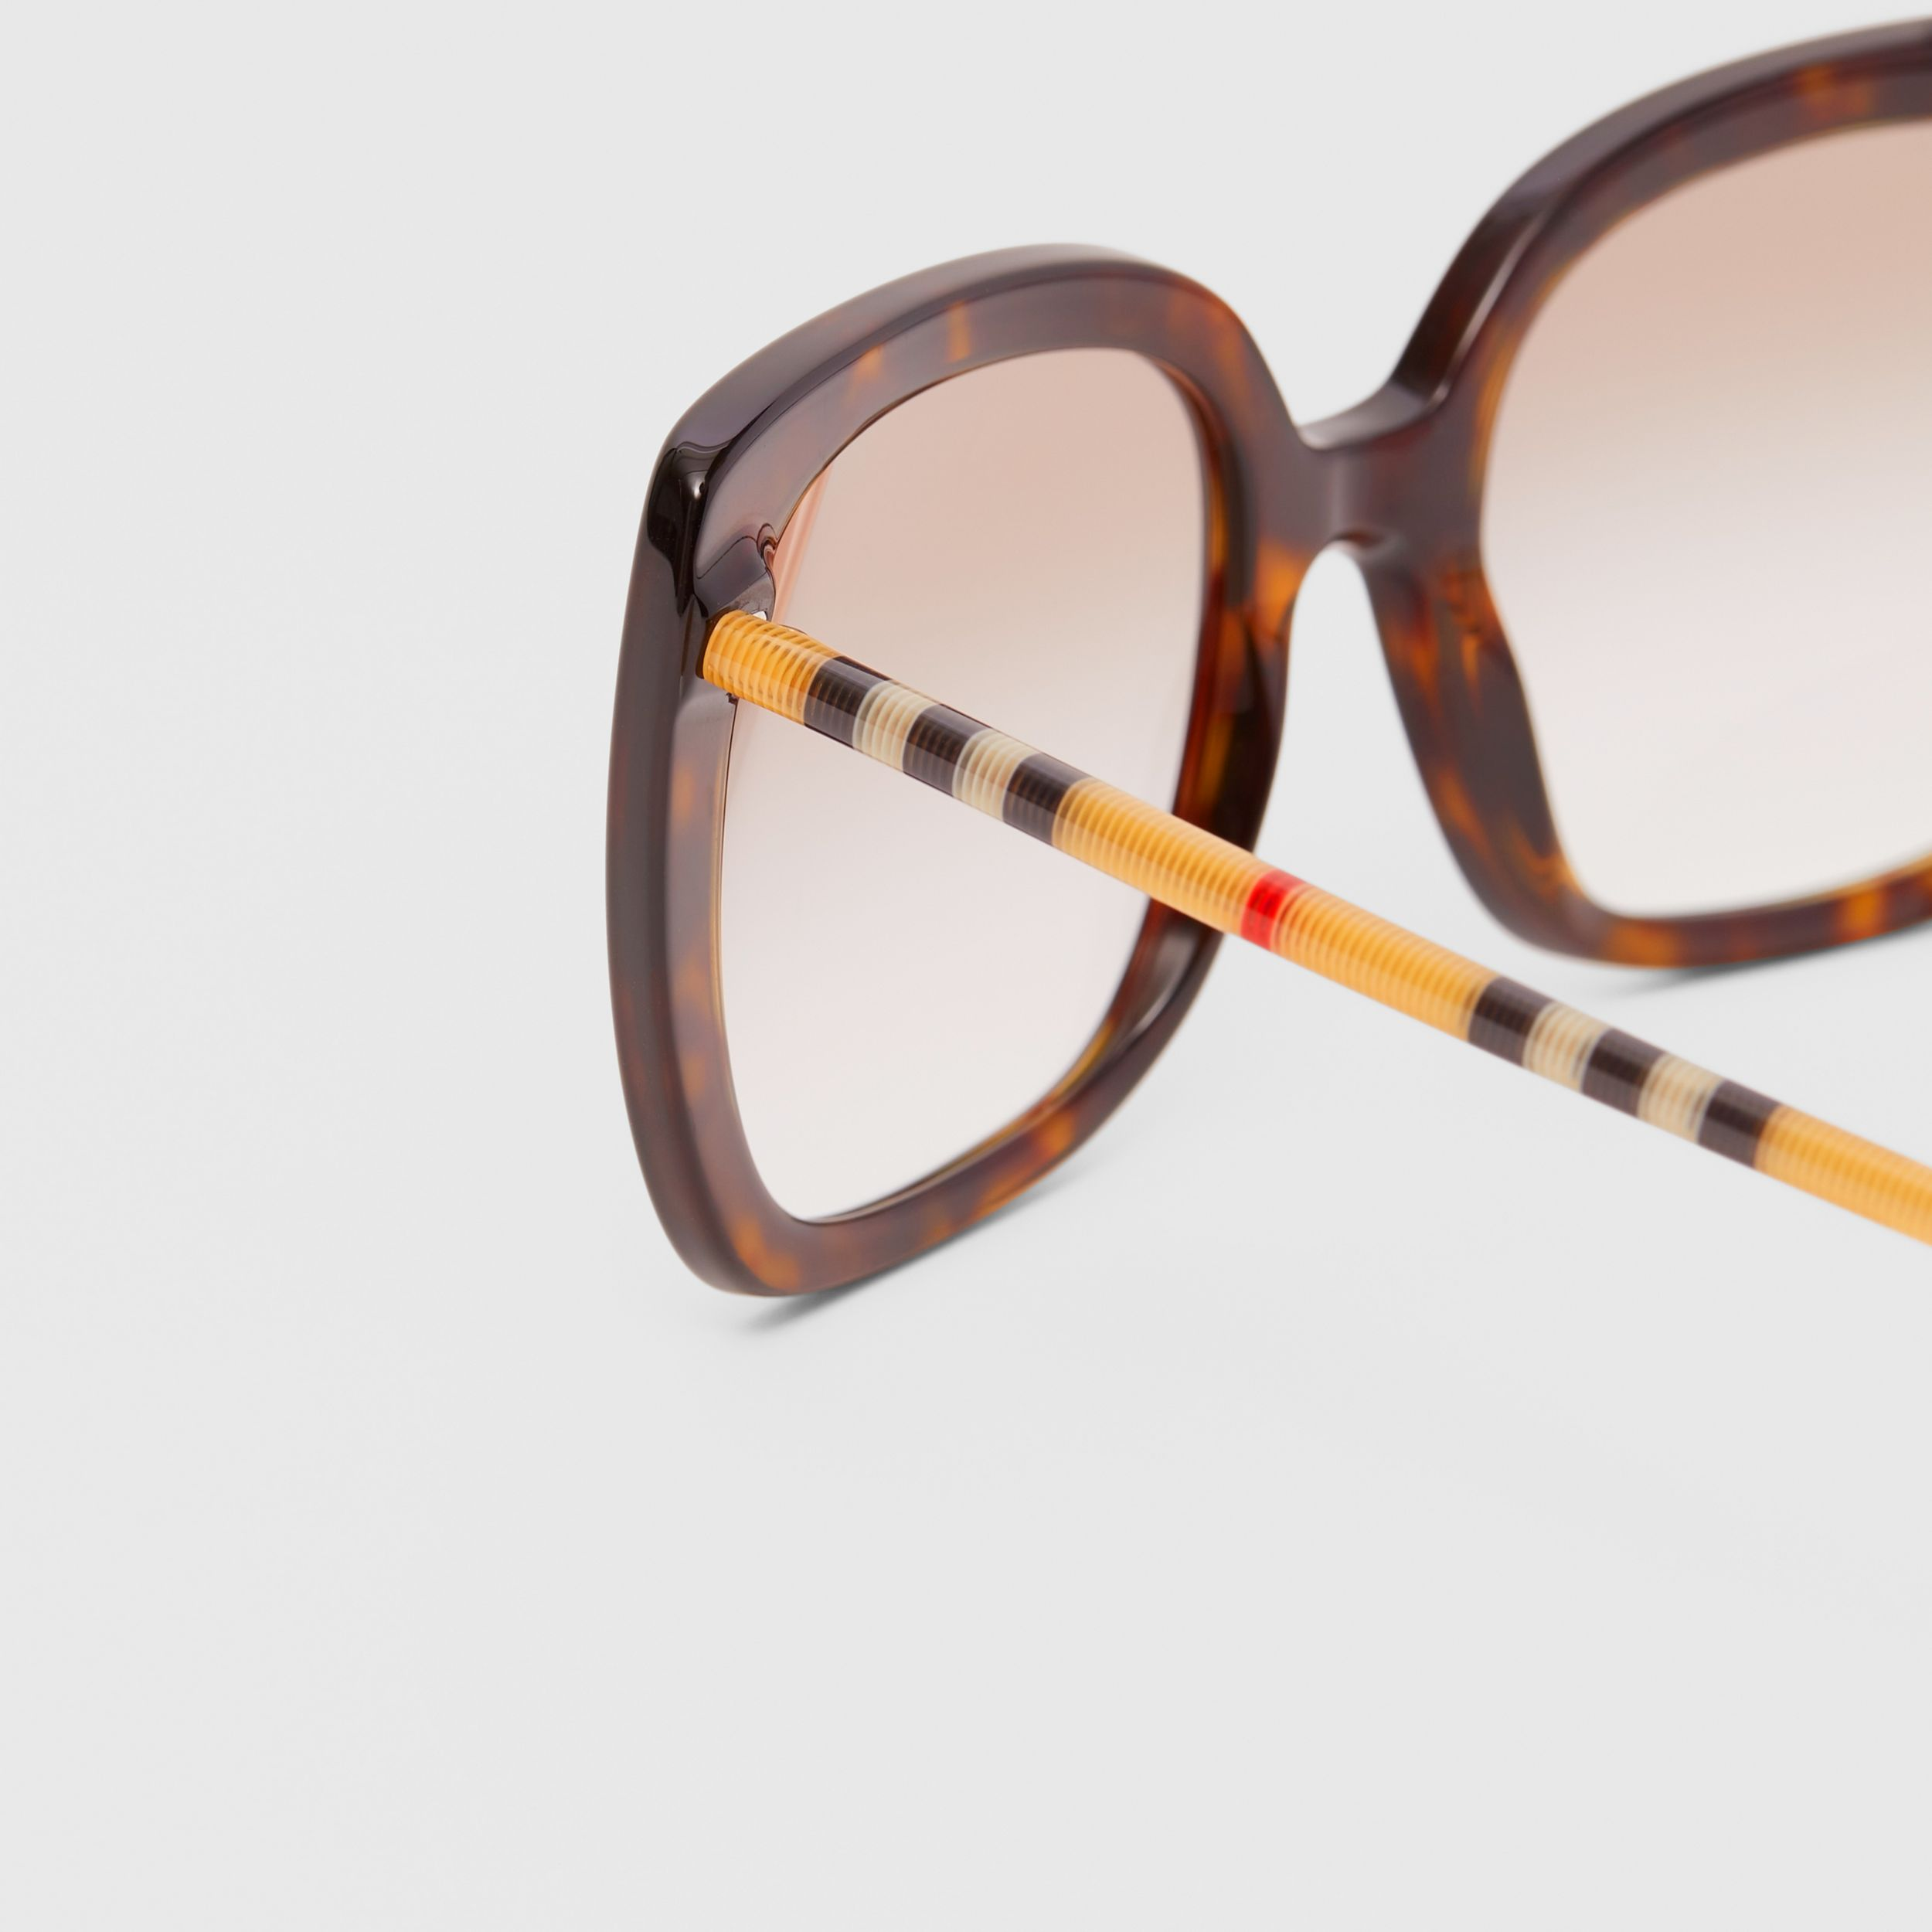 Oversized Square Frame Sunglasses in Tortoiseshell - Women | Burberry Canada - 2